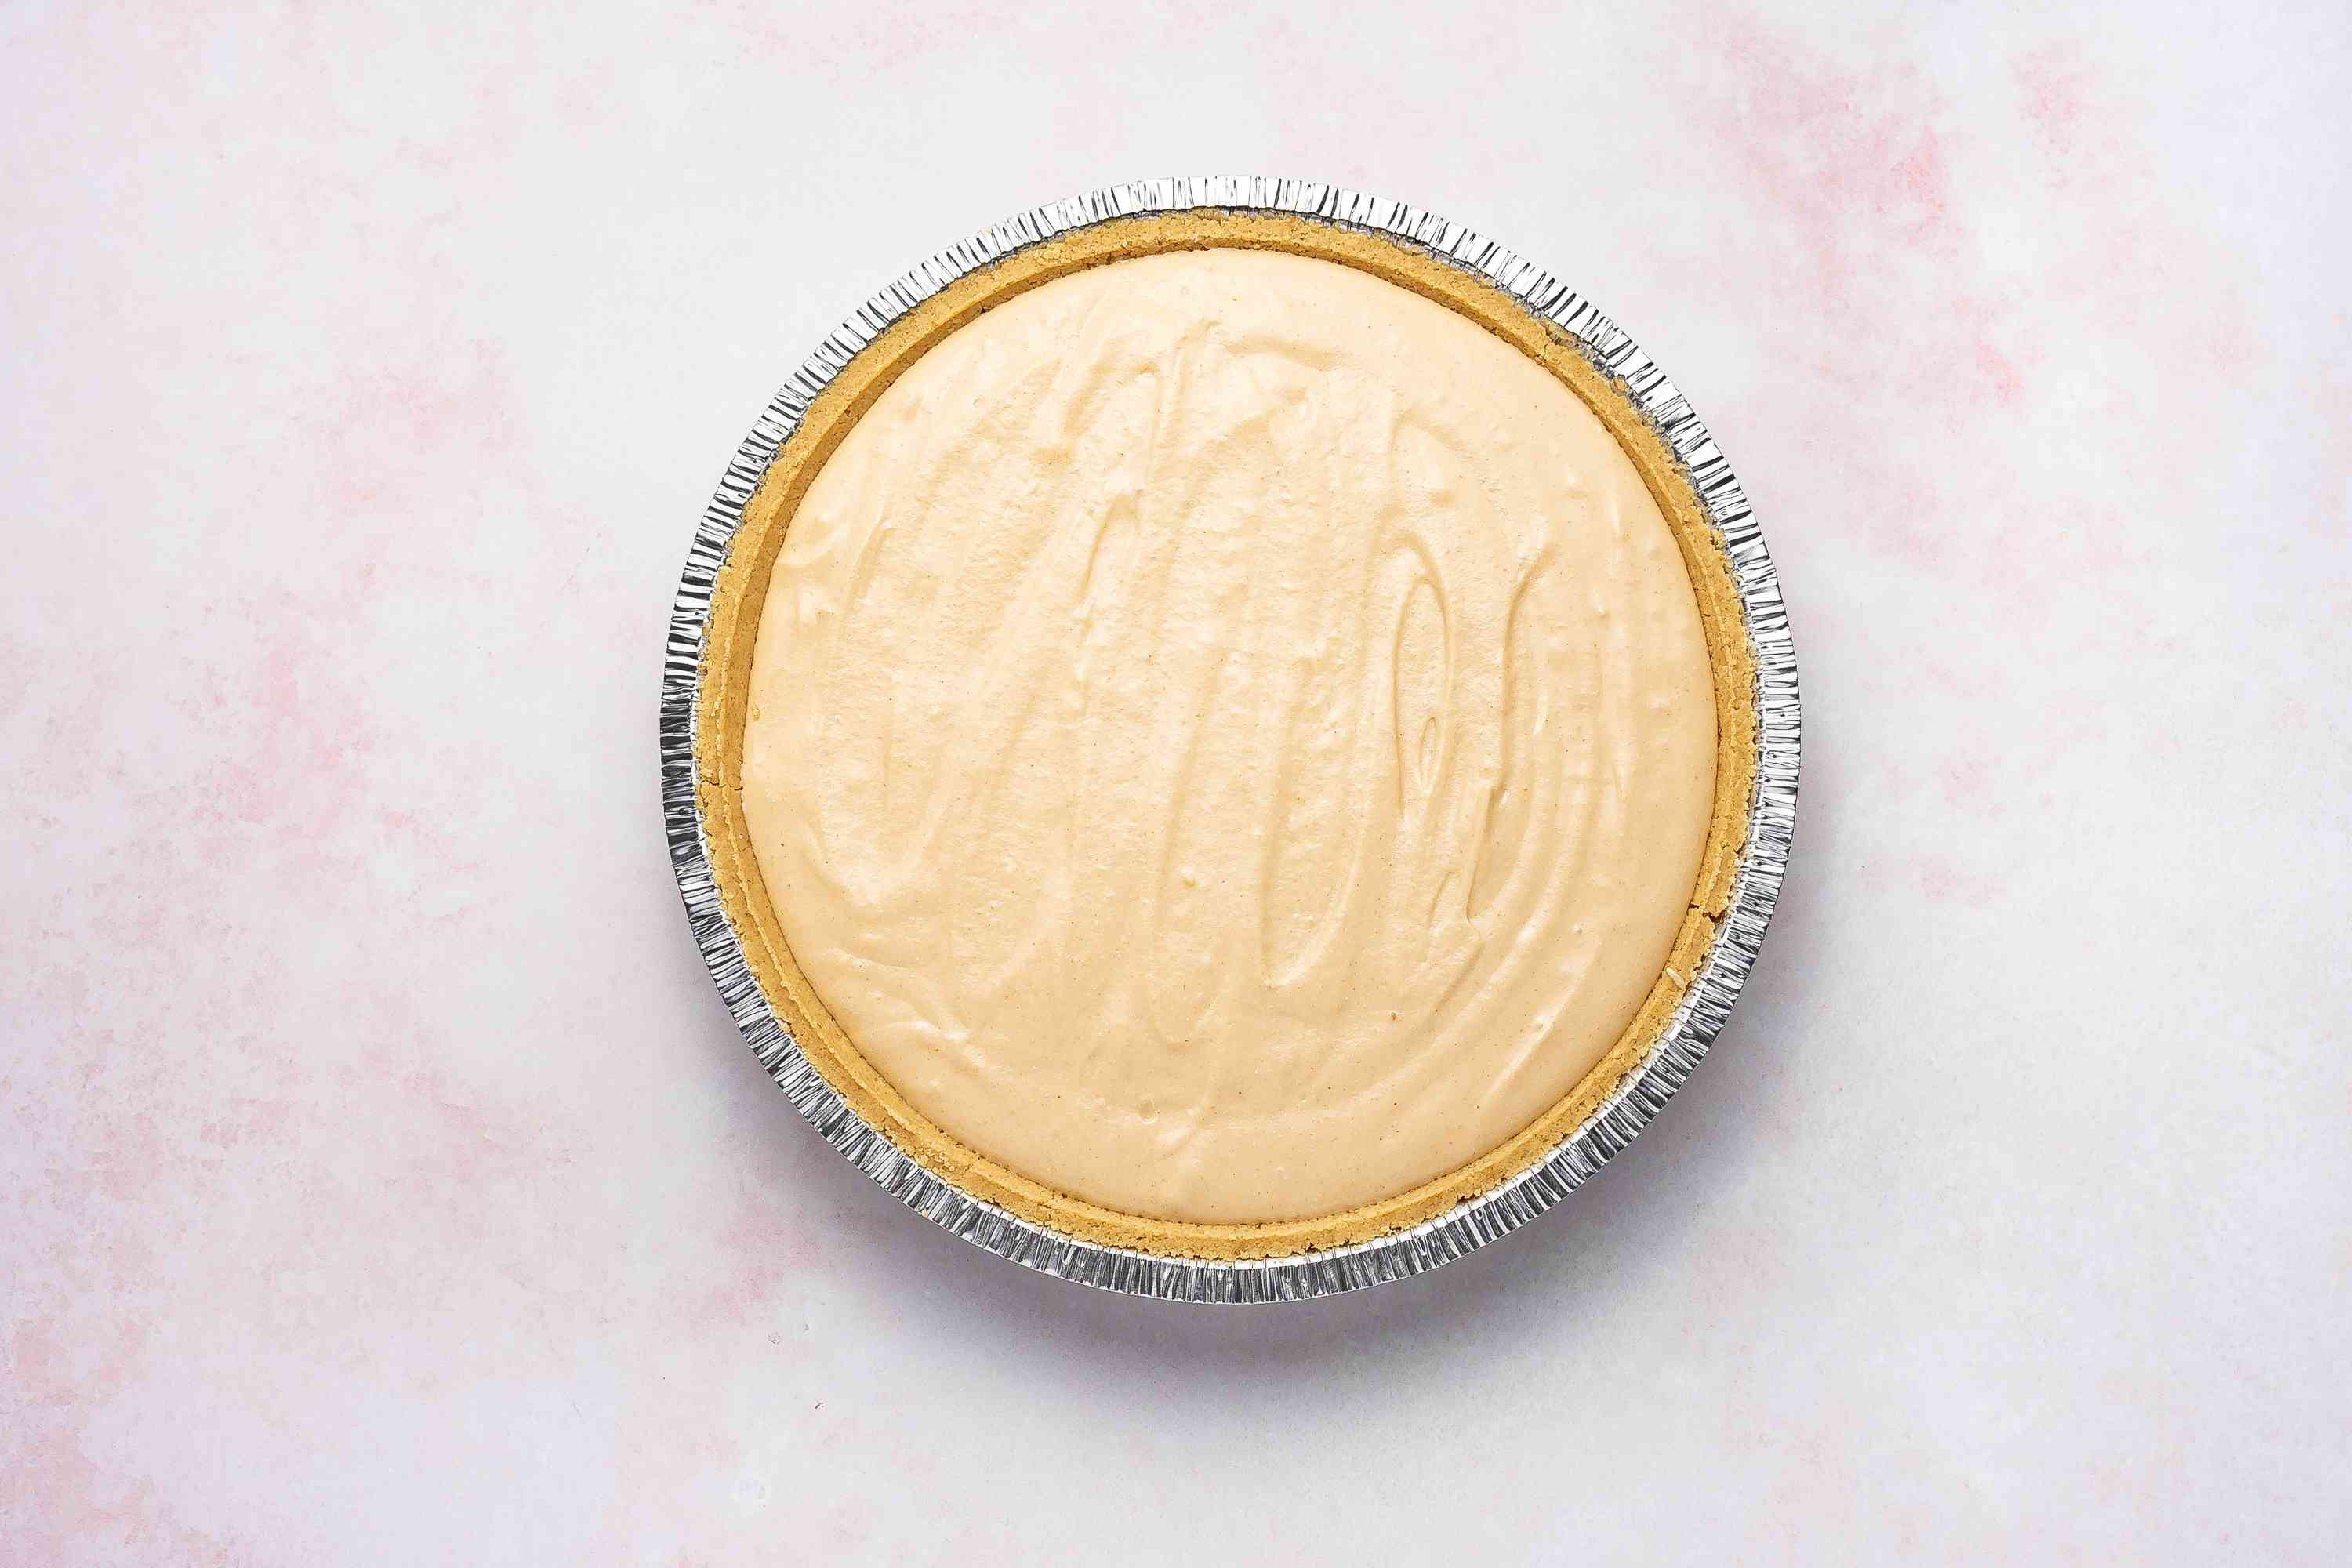 No-Bake Peanut Butter Pie With Cream Cheese Filling